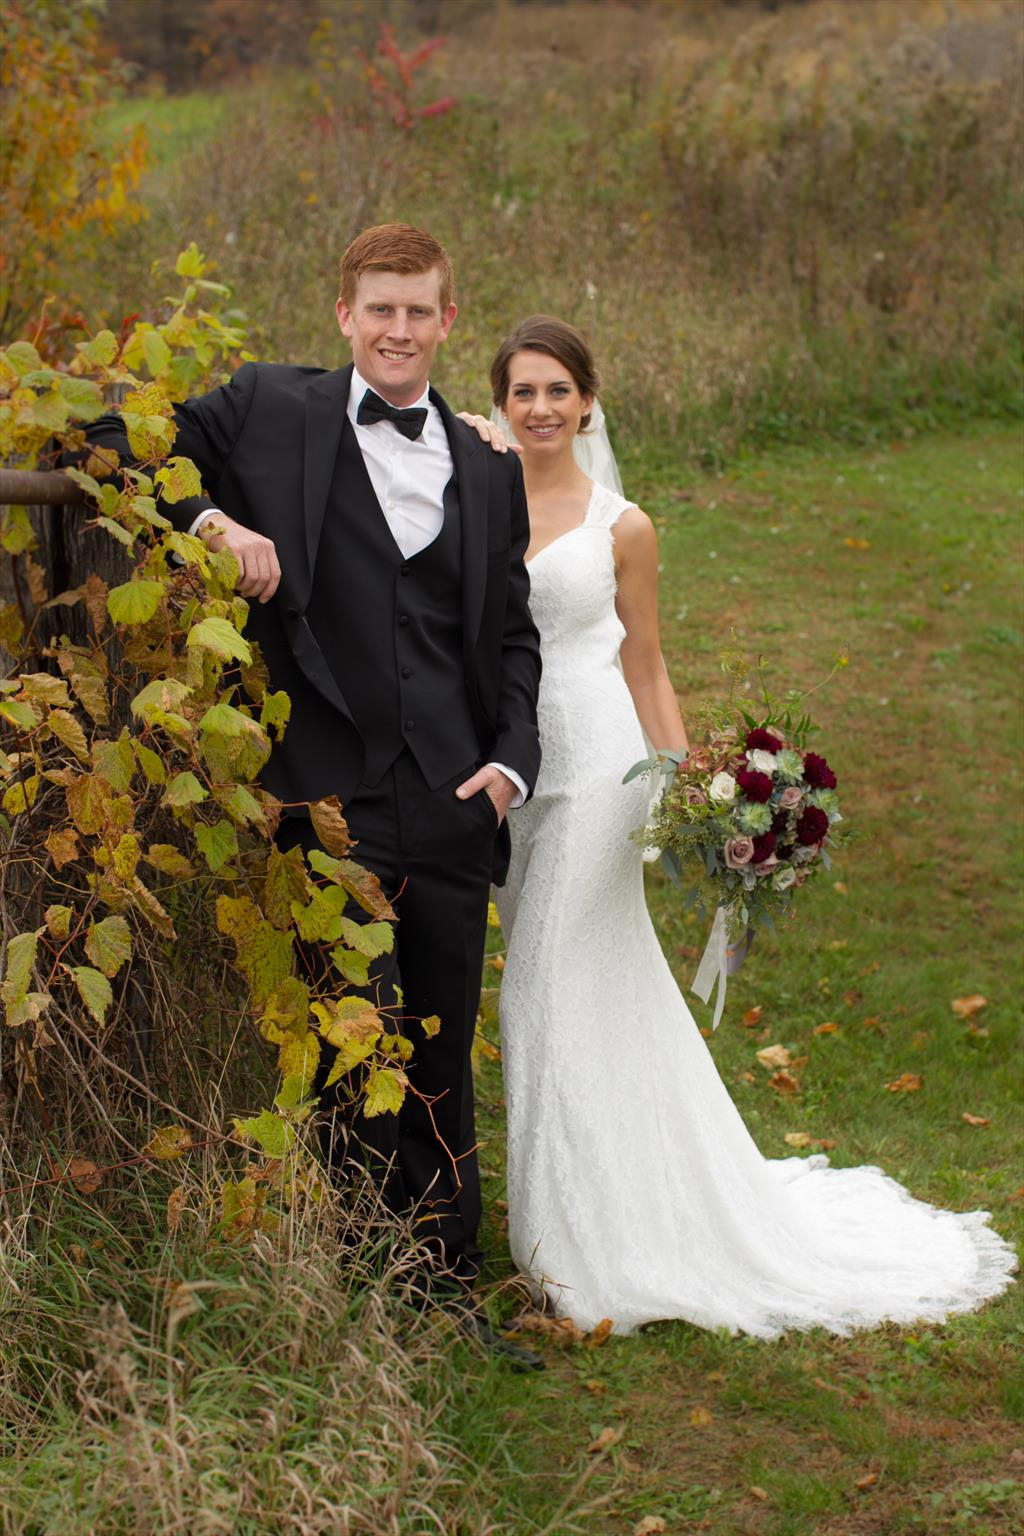 Brooke Gabbert ('13) and Wes Pakala were married on October 16, 2016 in Nelson, Wisconsin.